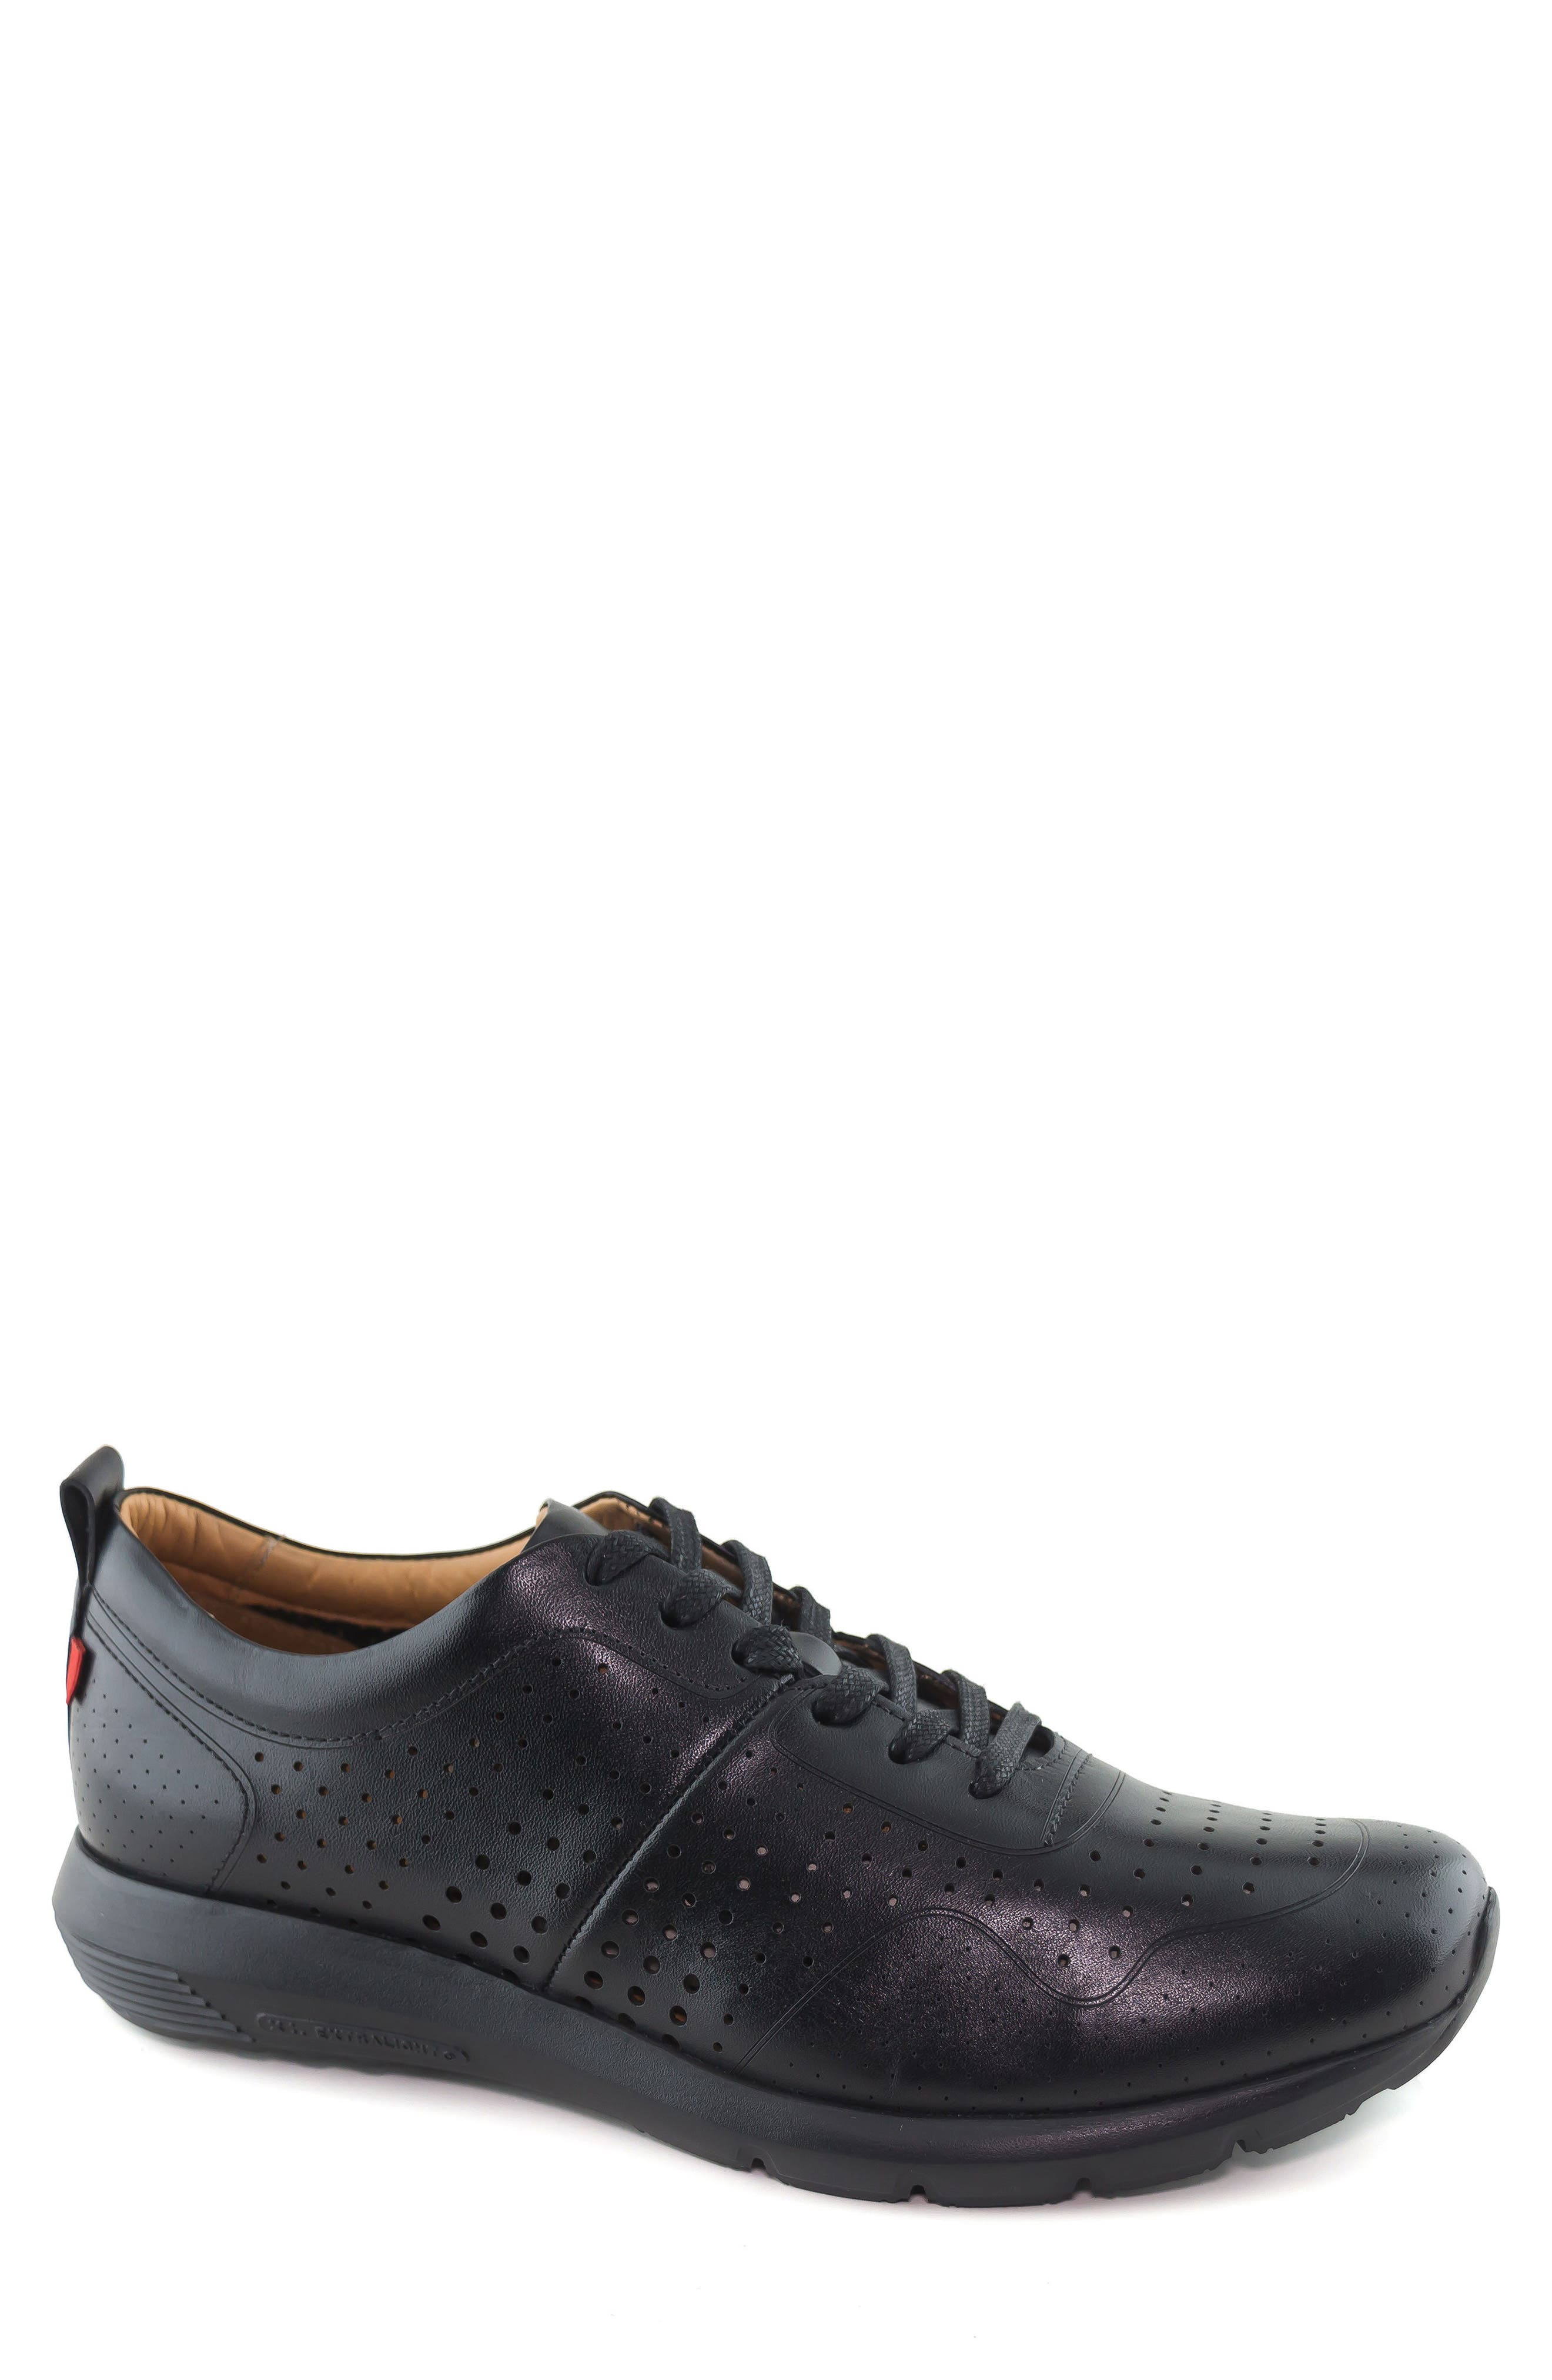 MARC JOSEPH NEW YORK Grand Central Perforated Sneaker, Main, color, BLACK